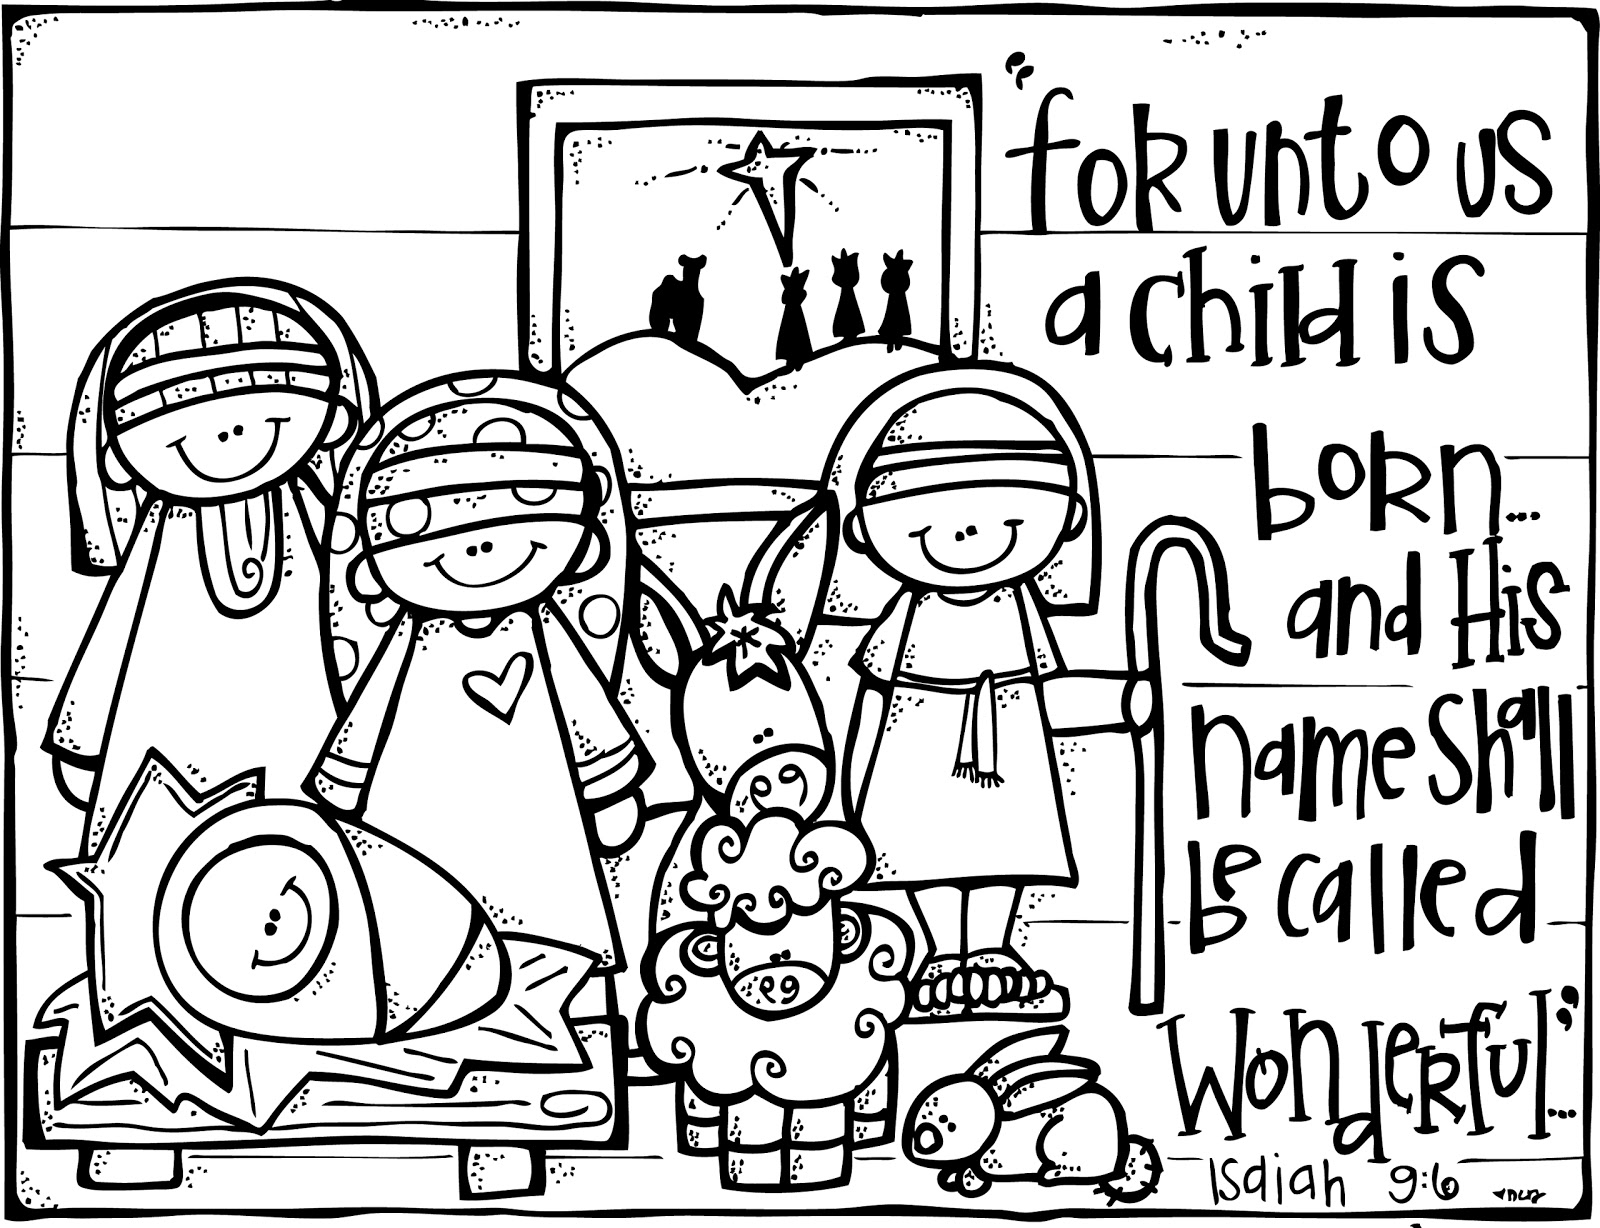 Nativity coloring page isaiah 96